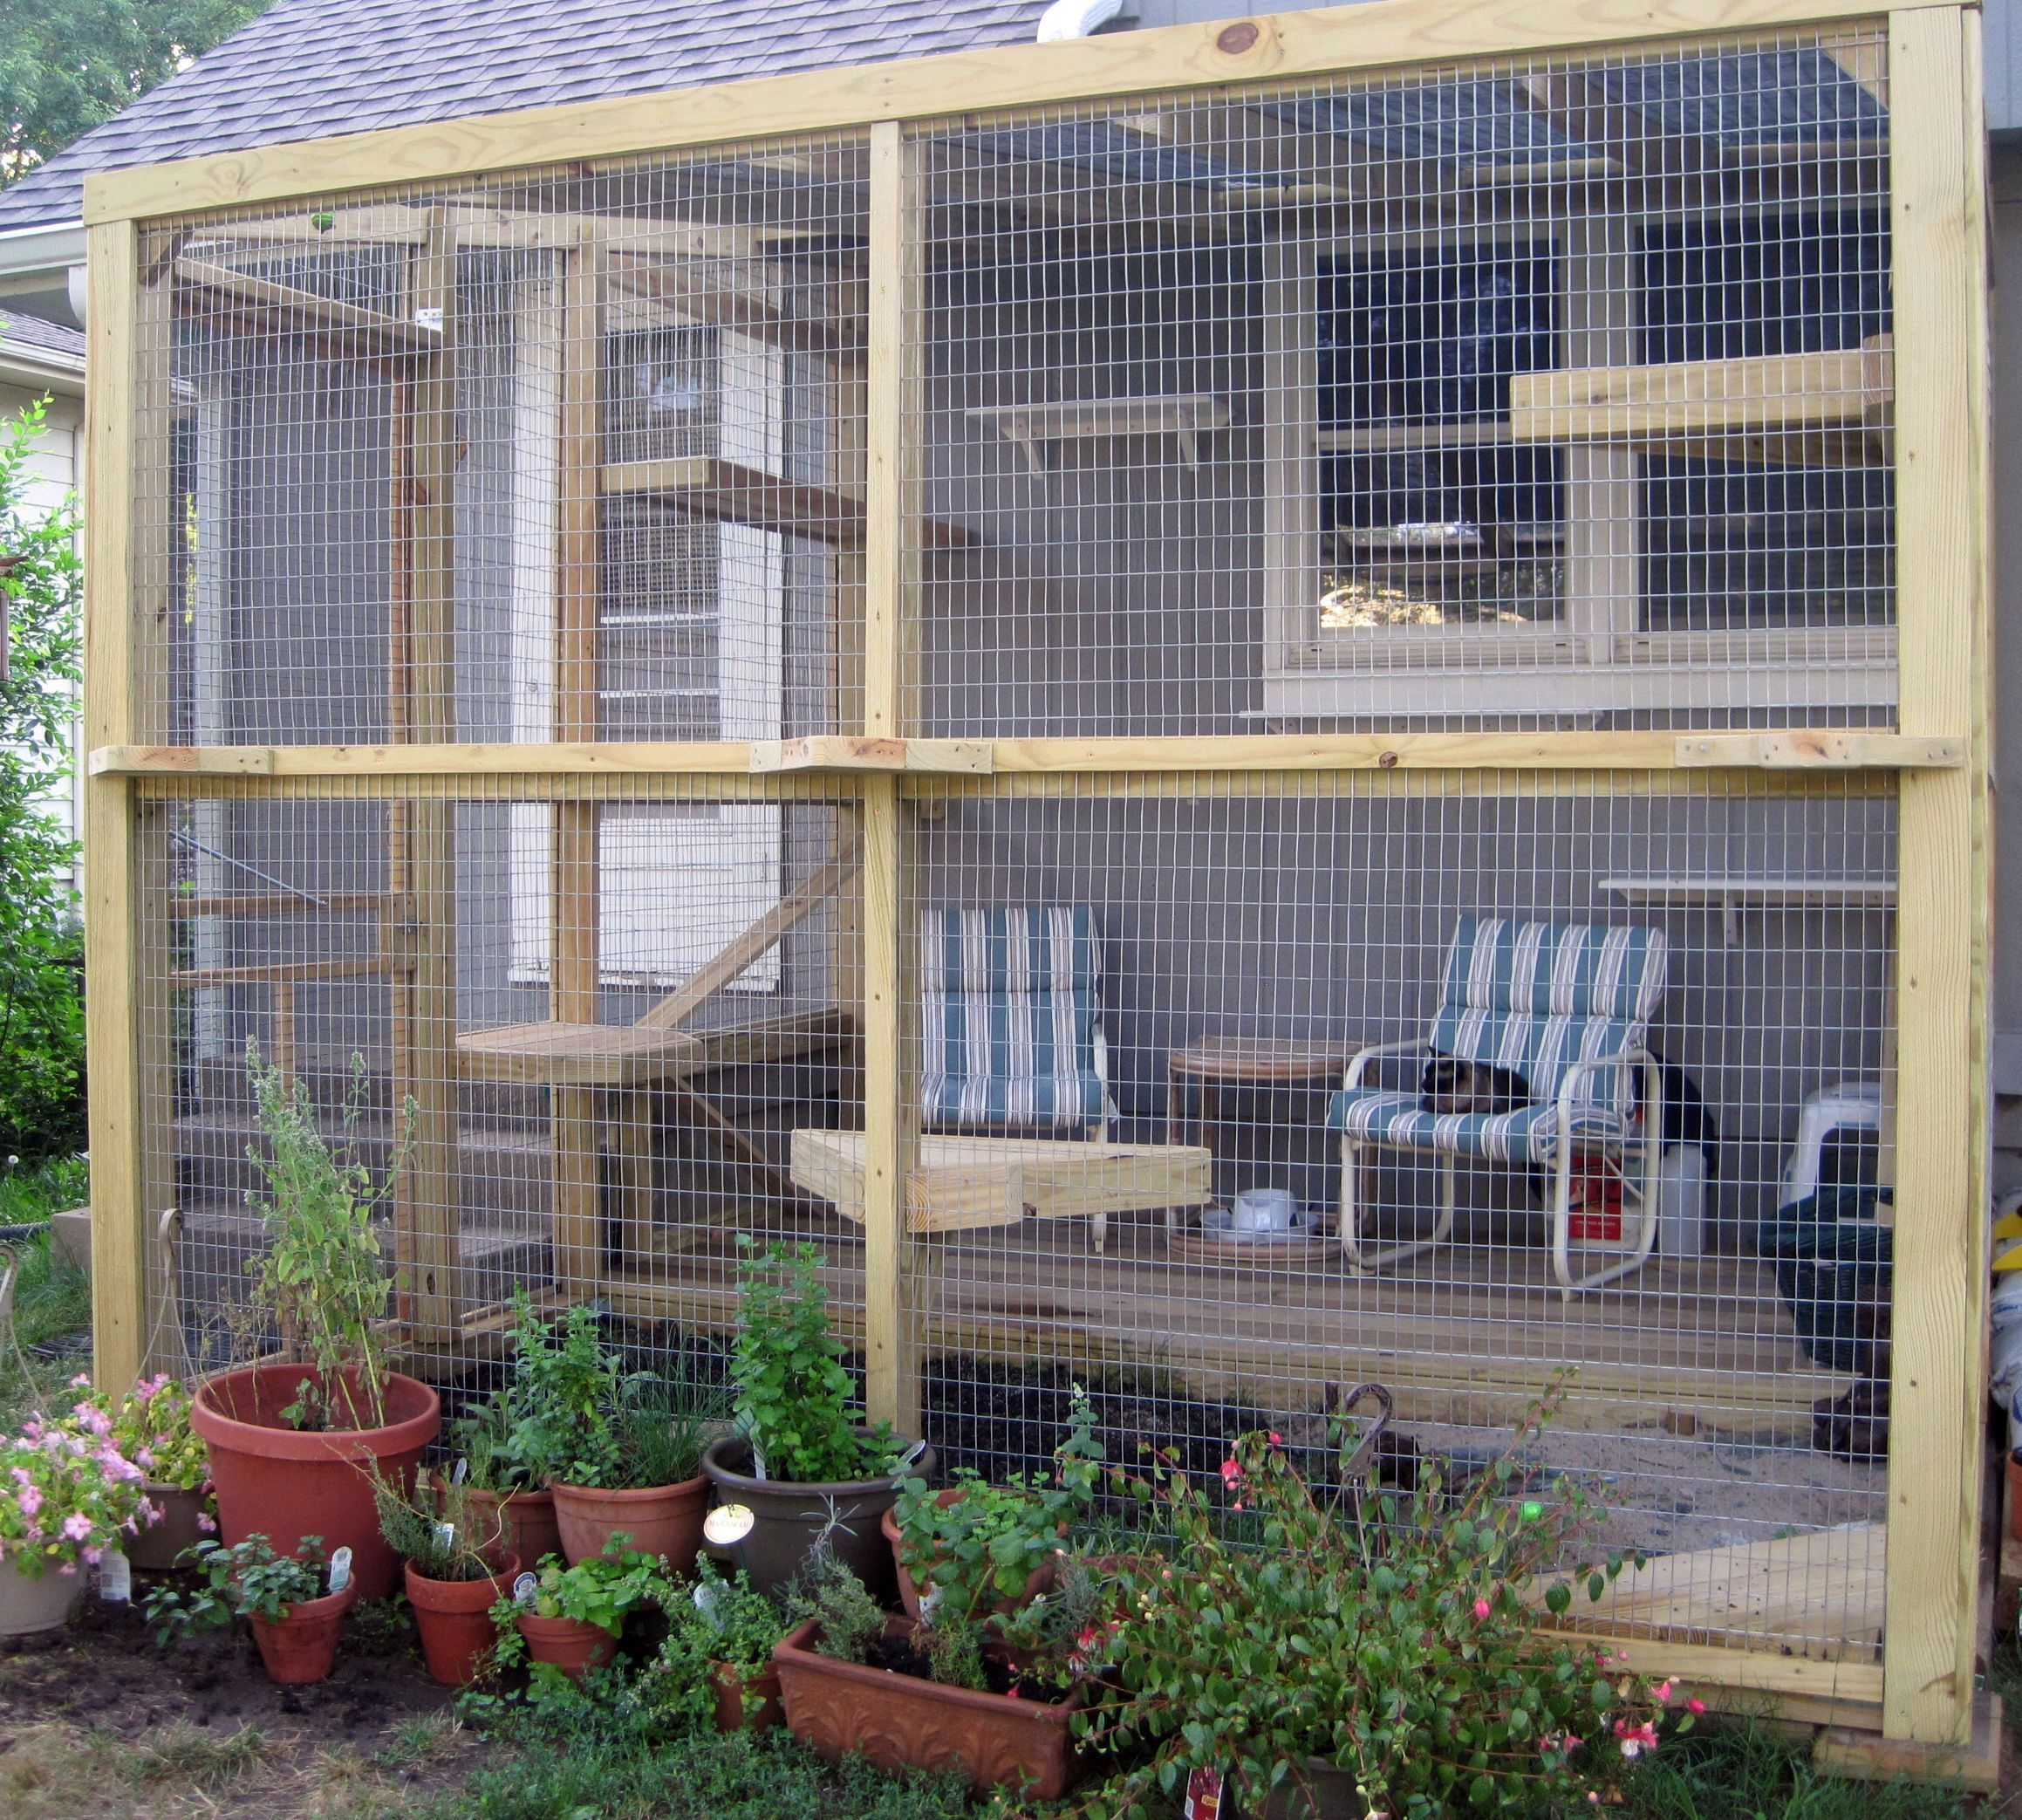 Catio Our Cat 39 S New Outdoor Happy Place Animal House